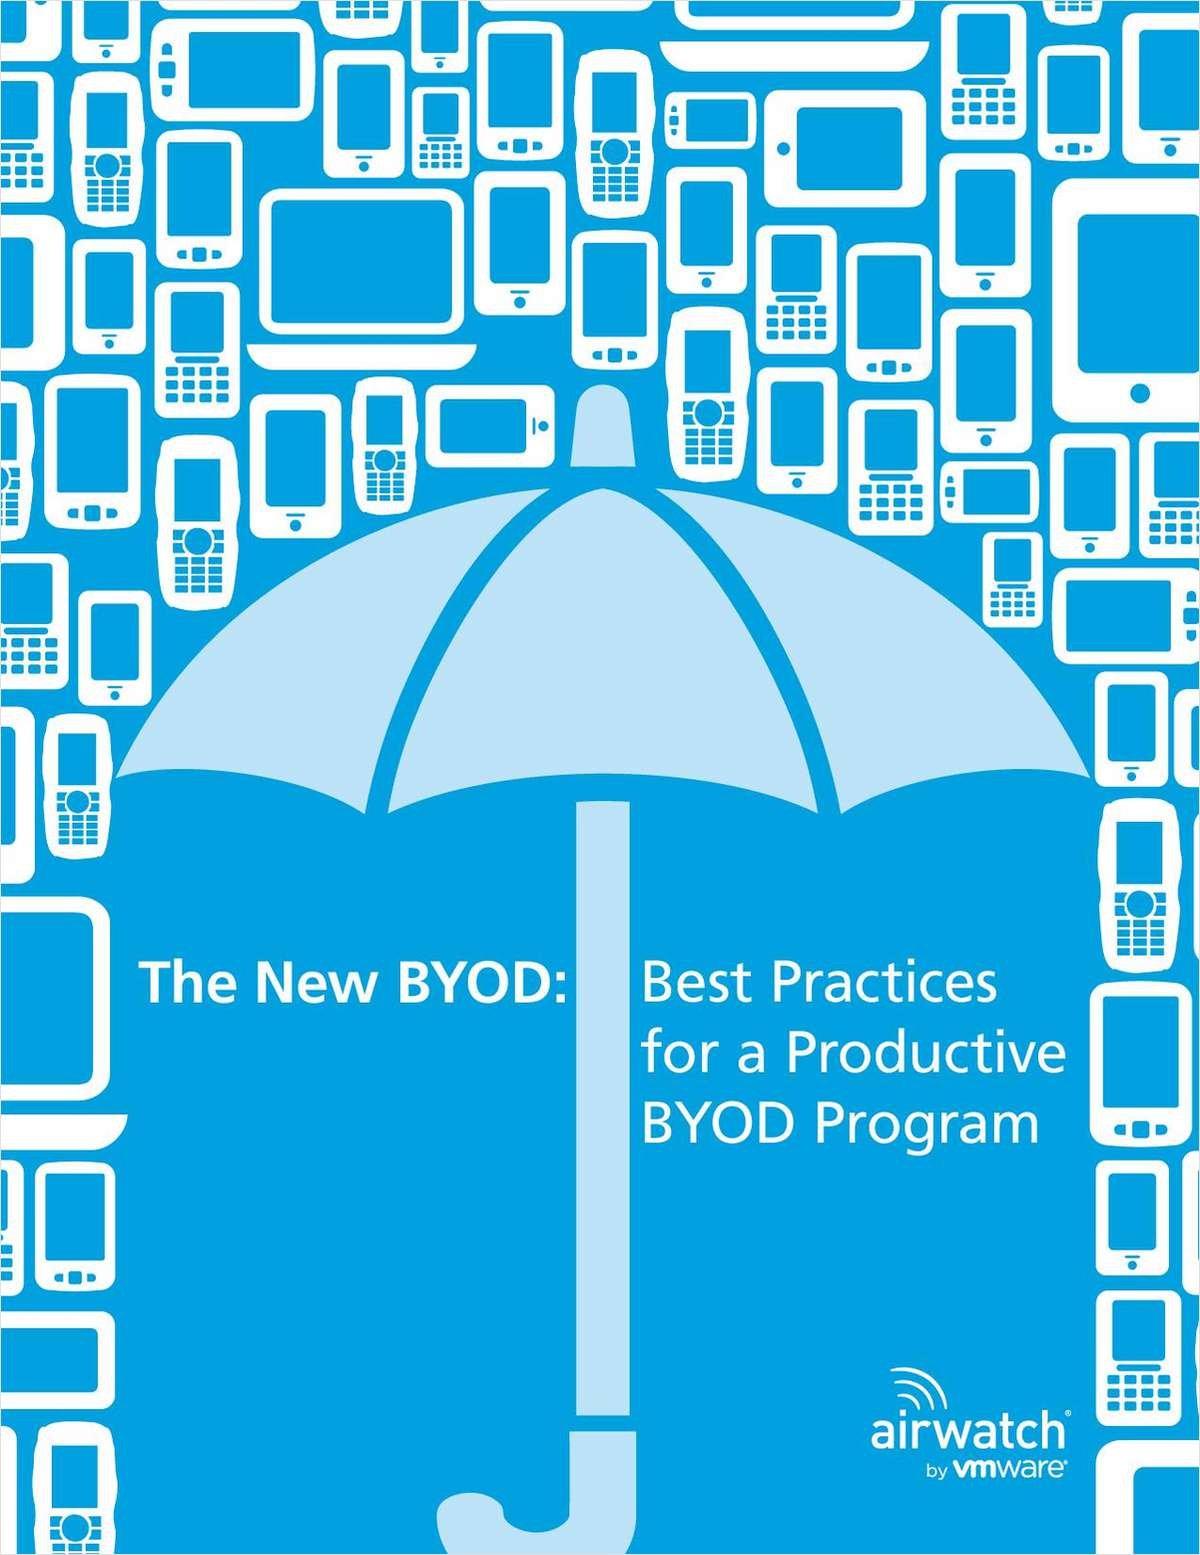 The New BYOD: Best Practices for a Productive BYOD Program